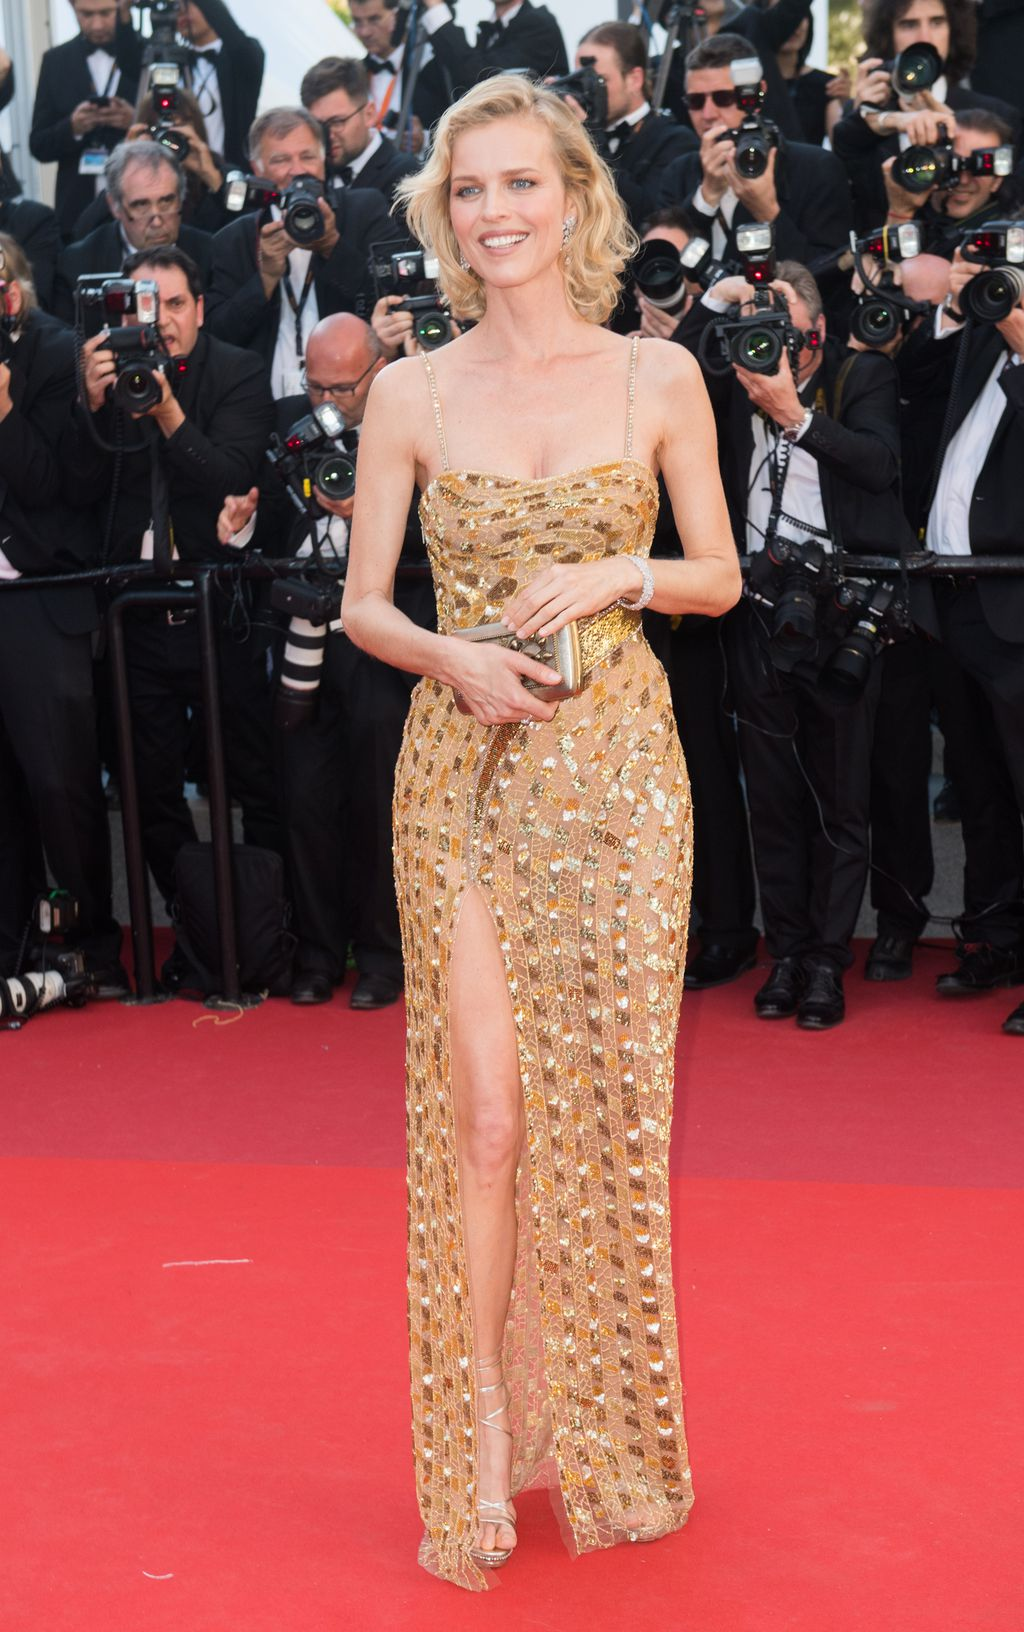 Eva Herzigová in Cannes Film festival 2017 red carpet